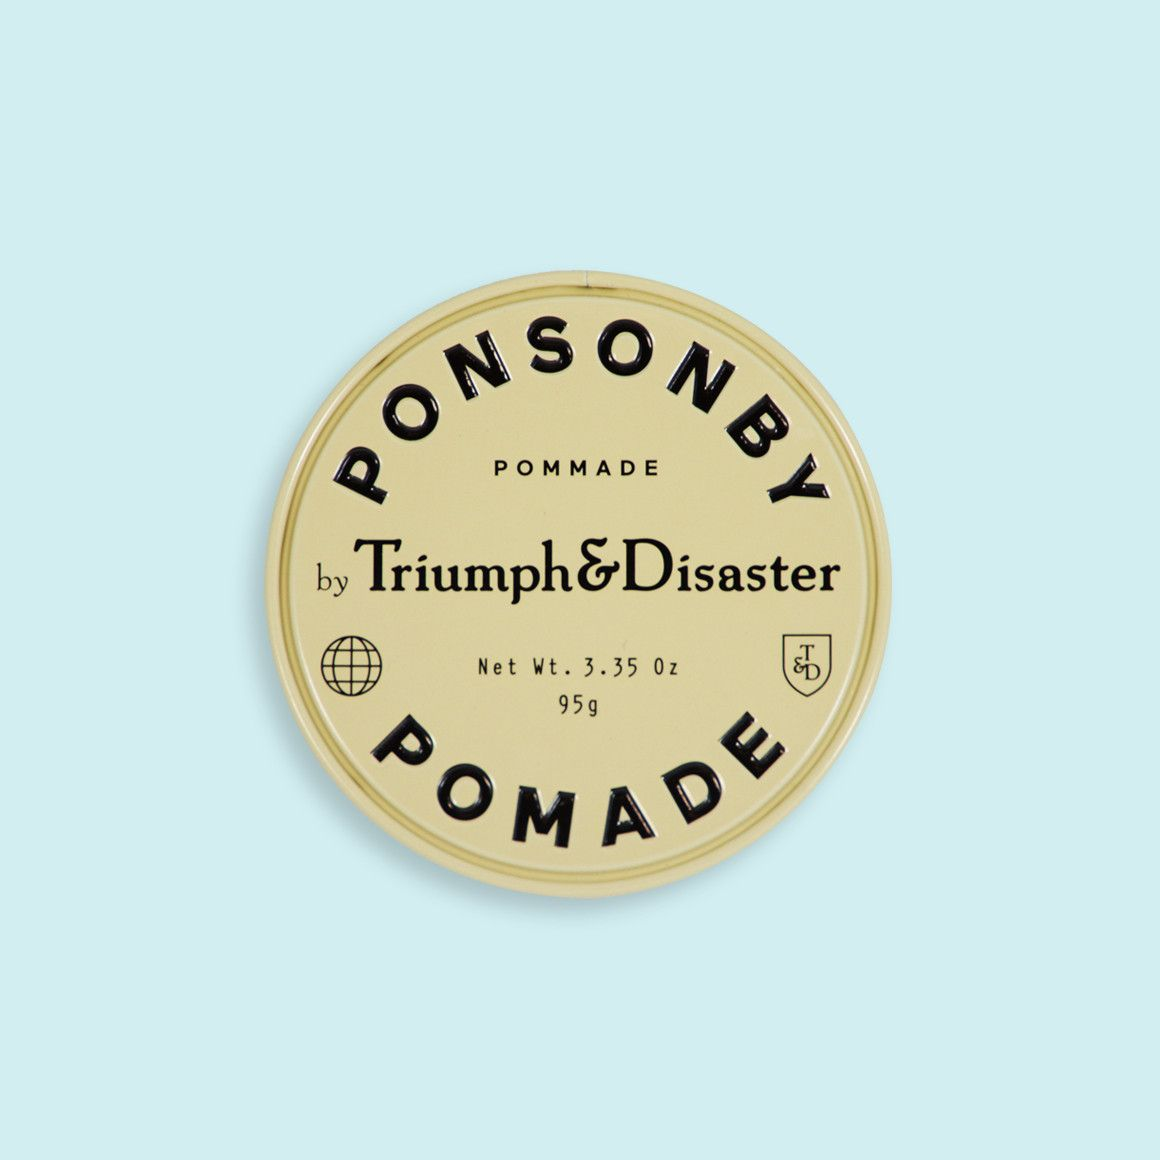 Ponsonby Pomade Triumph and Disaster